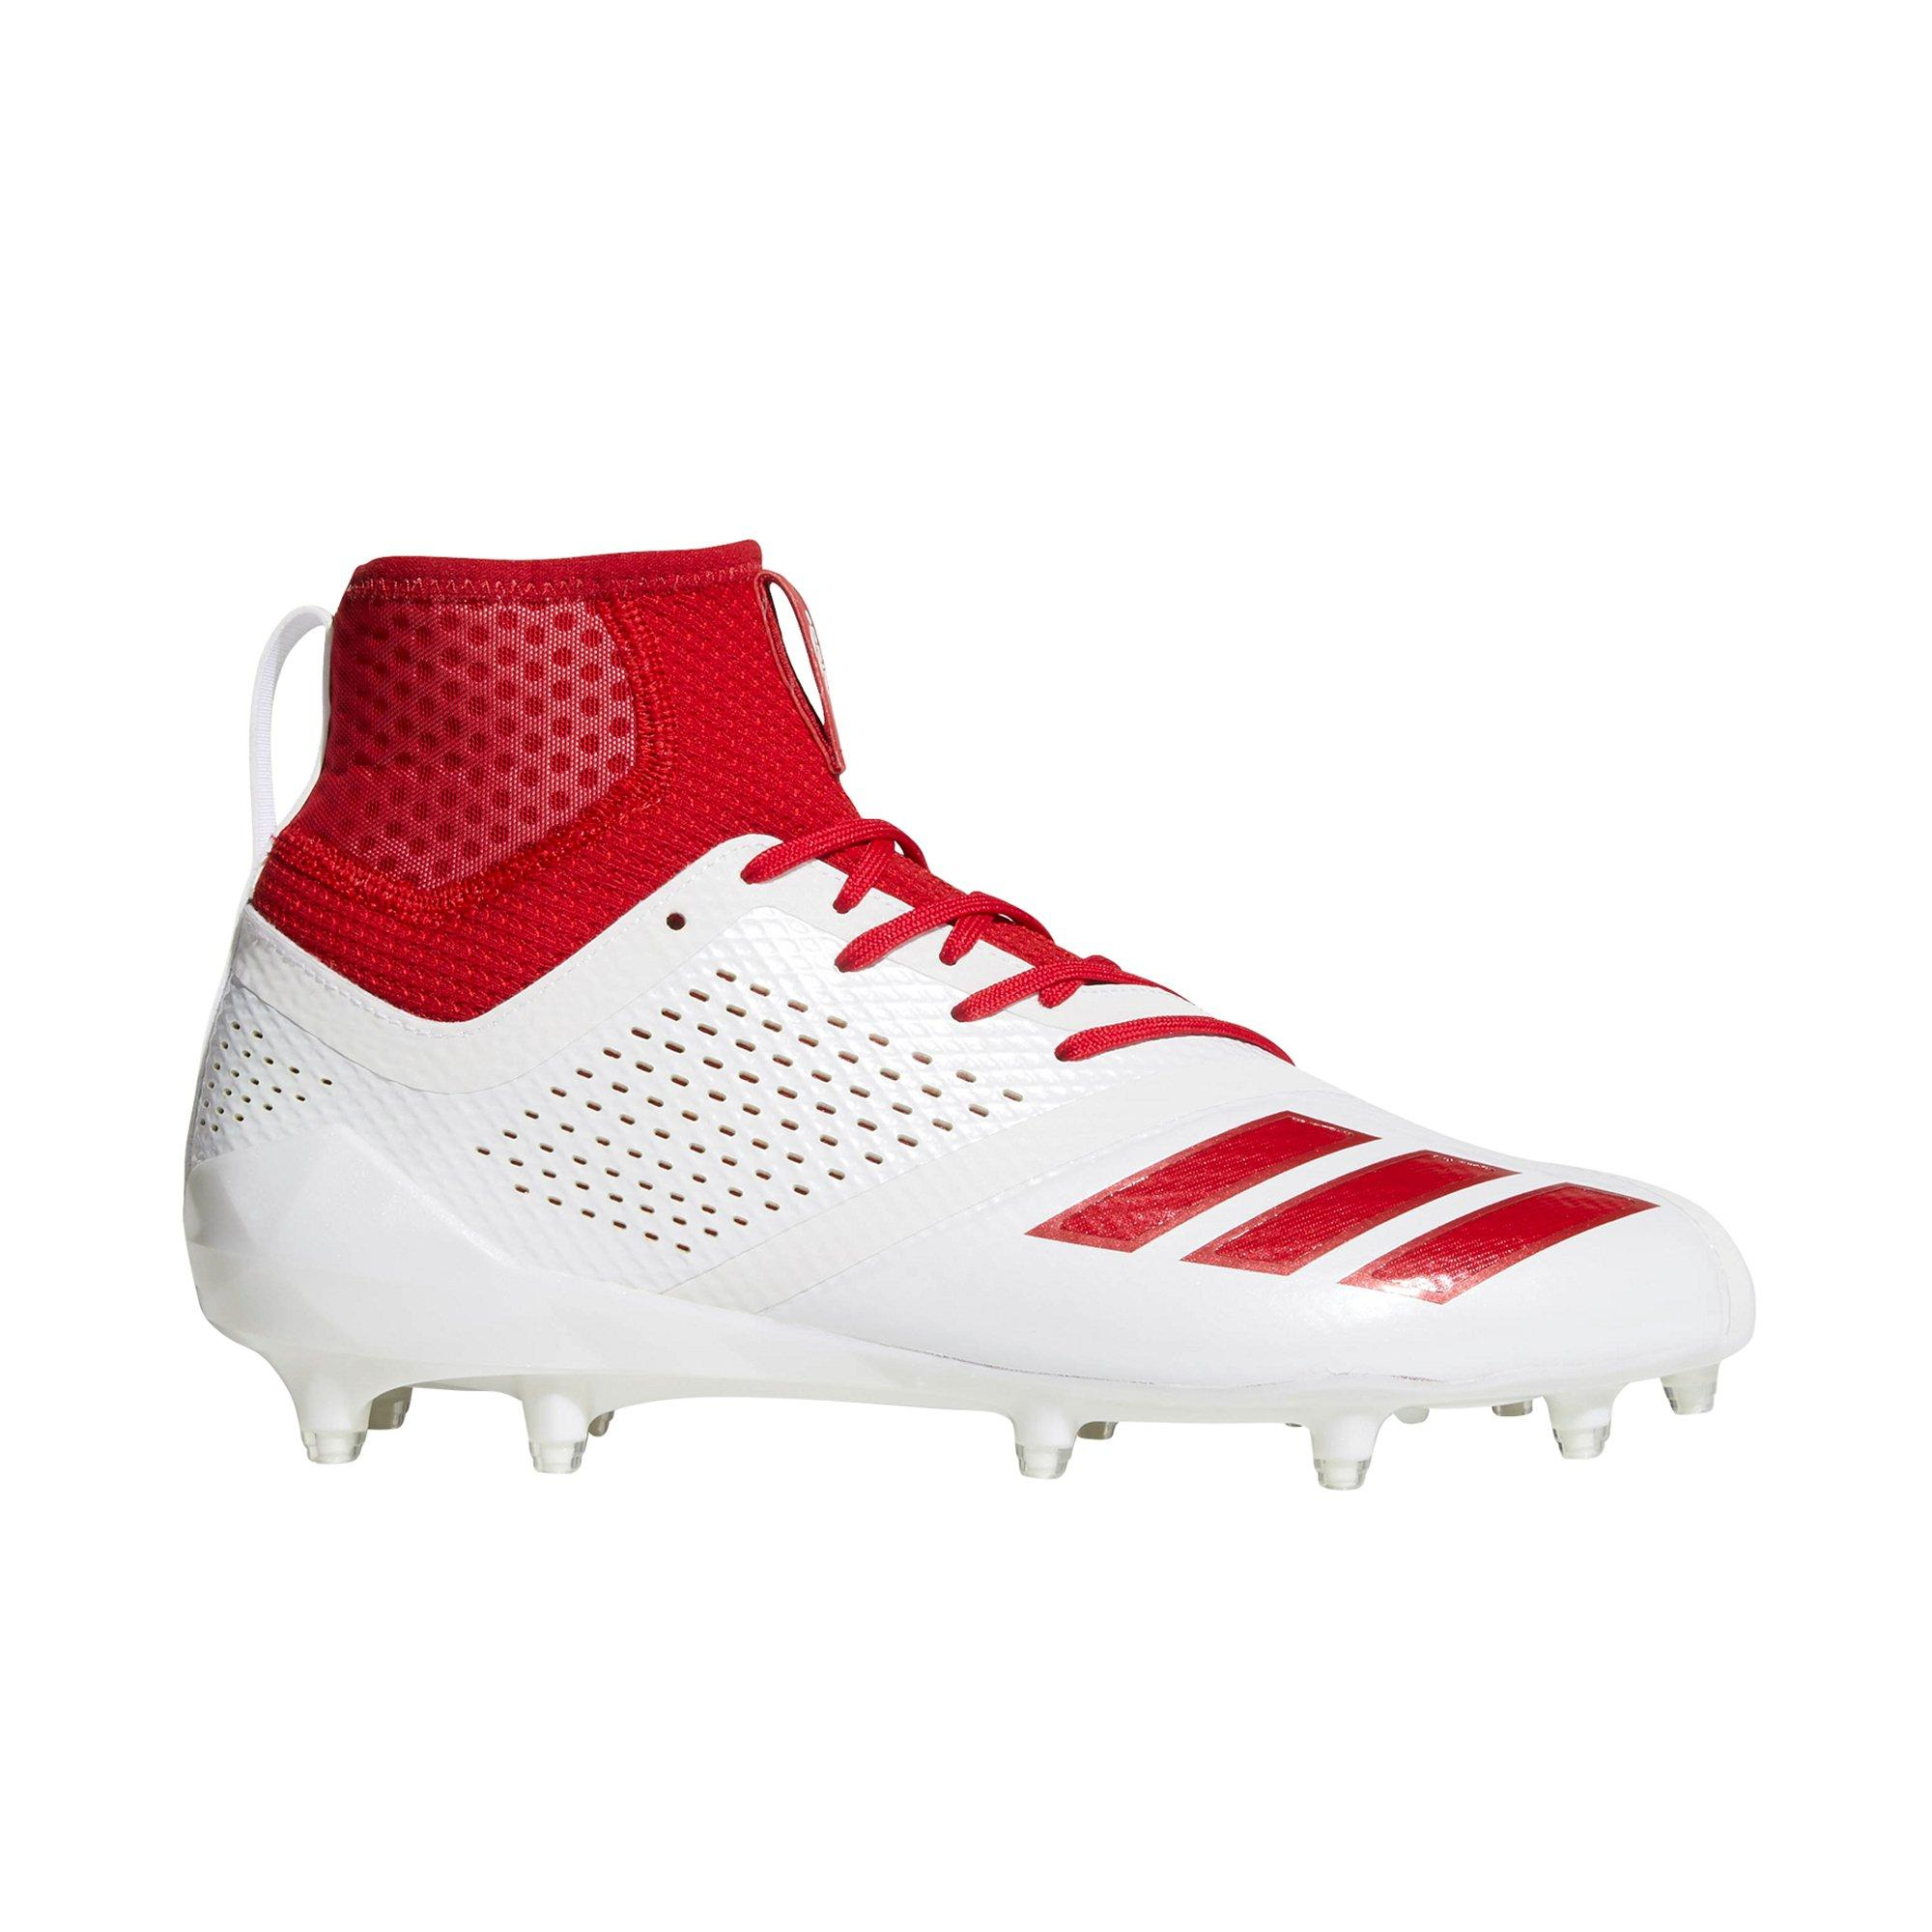 huge selection of 802c1 e7280 adidas adizero football cleats red. adidas adizero 5-Star 7.0 ...